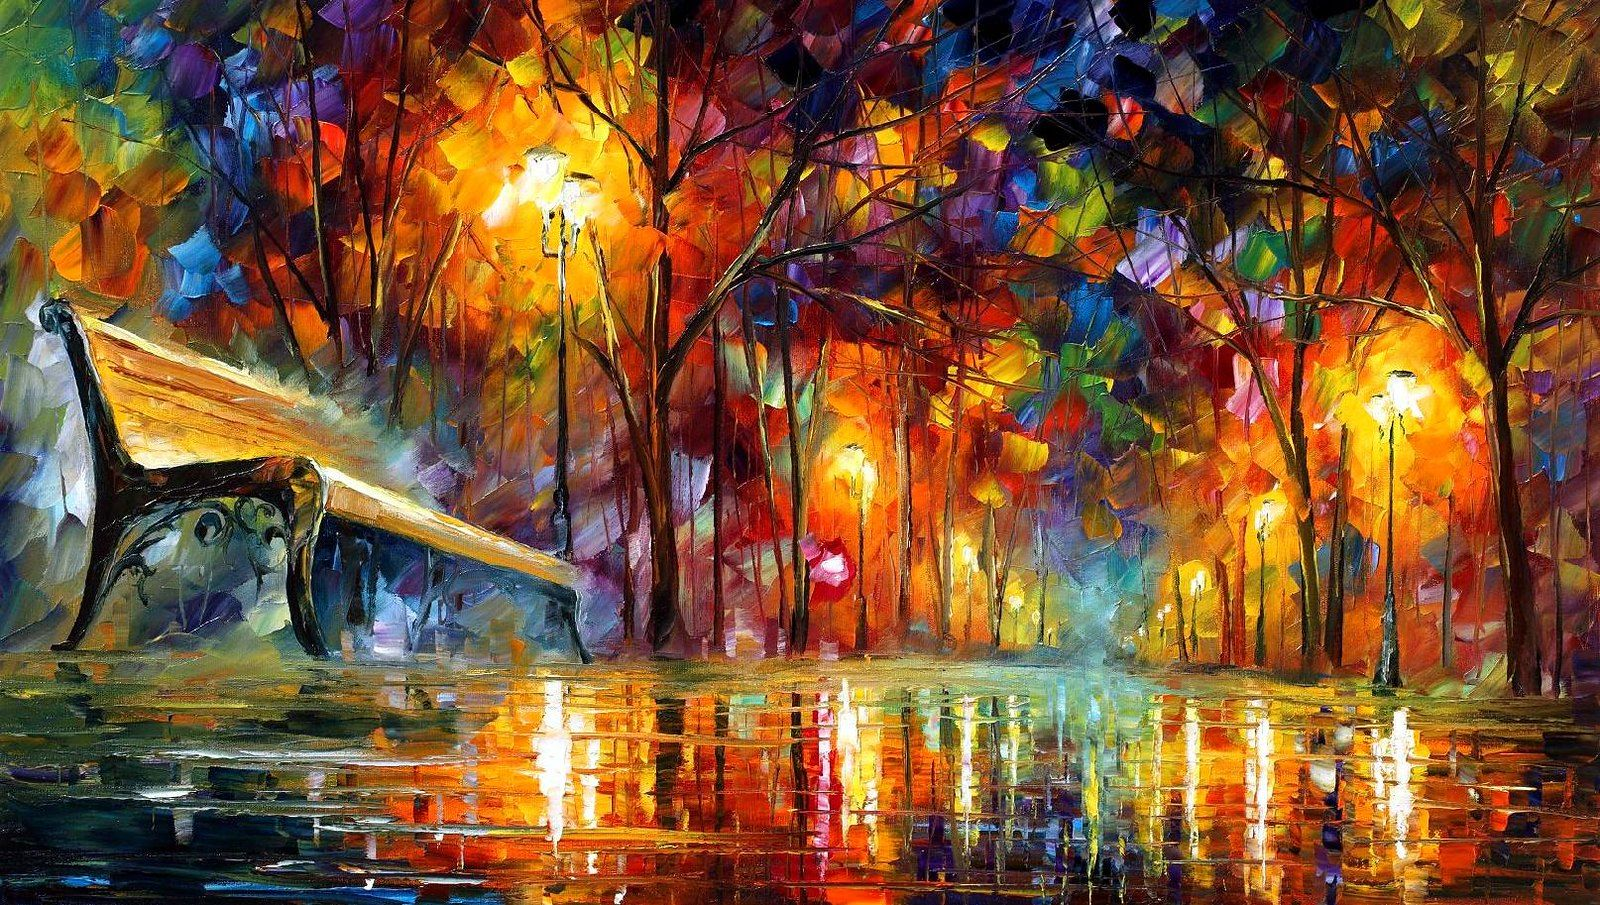 8 - night perspective 20 x 36 | Leonid Afremov | Flickr